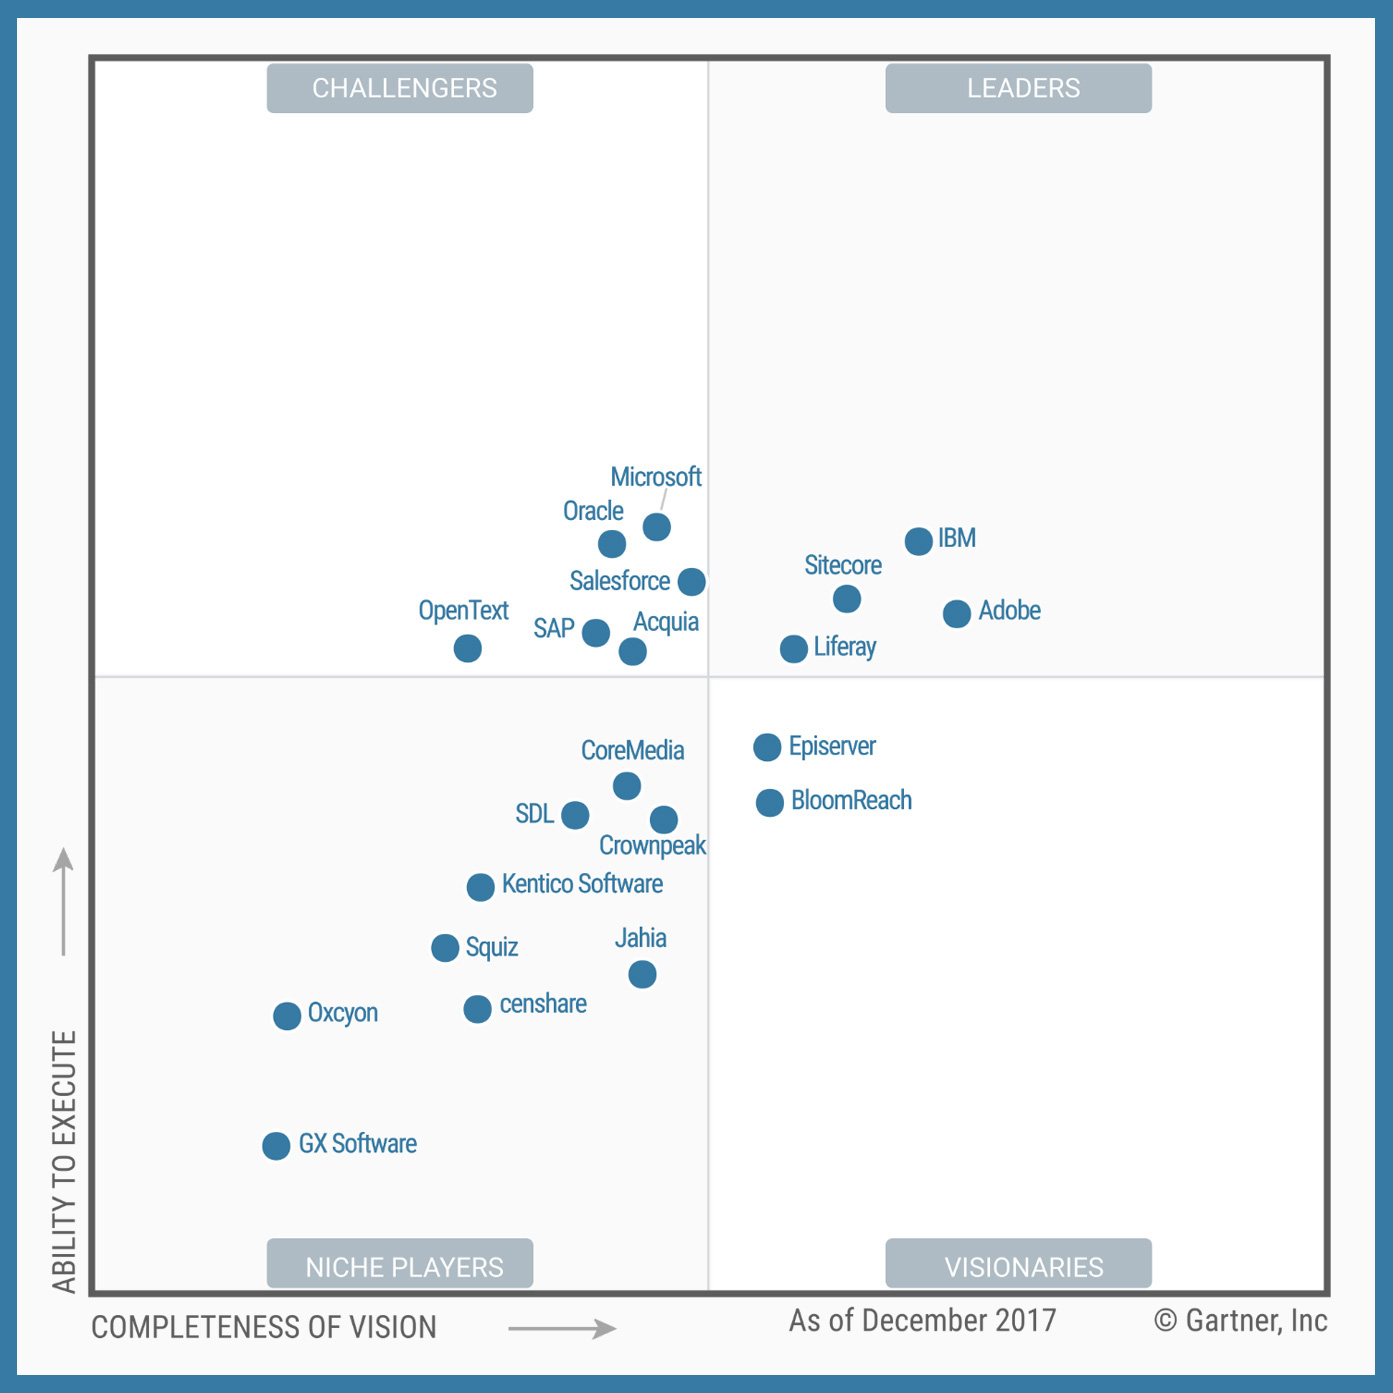 Magic Quadrant for DXP Platforms according to Gartner